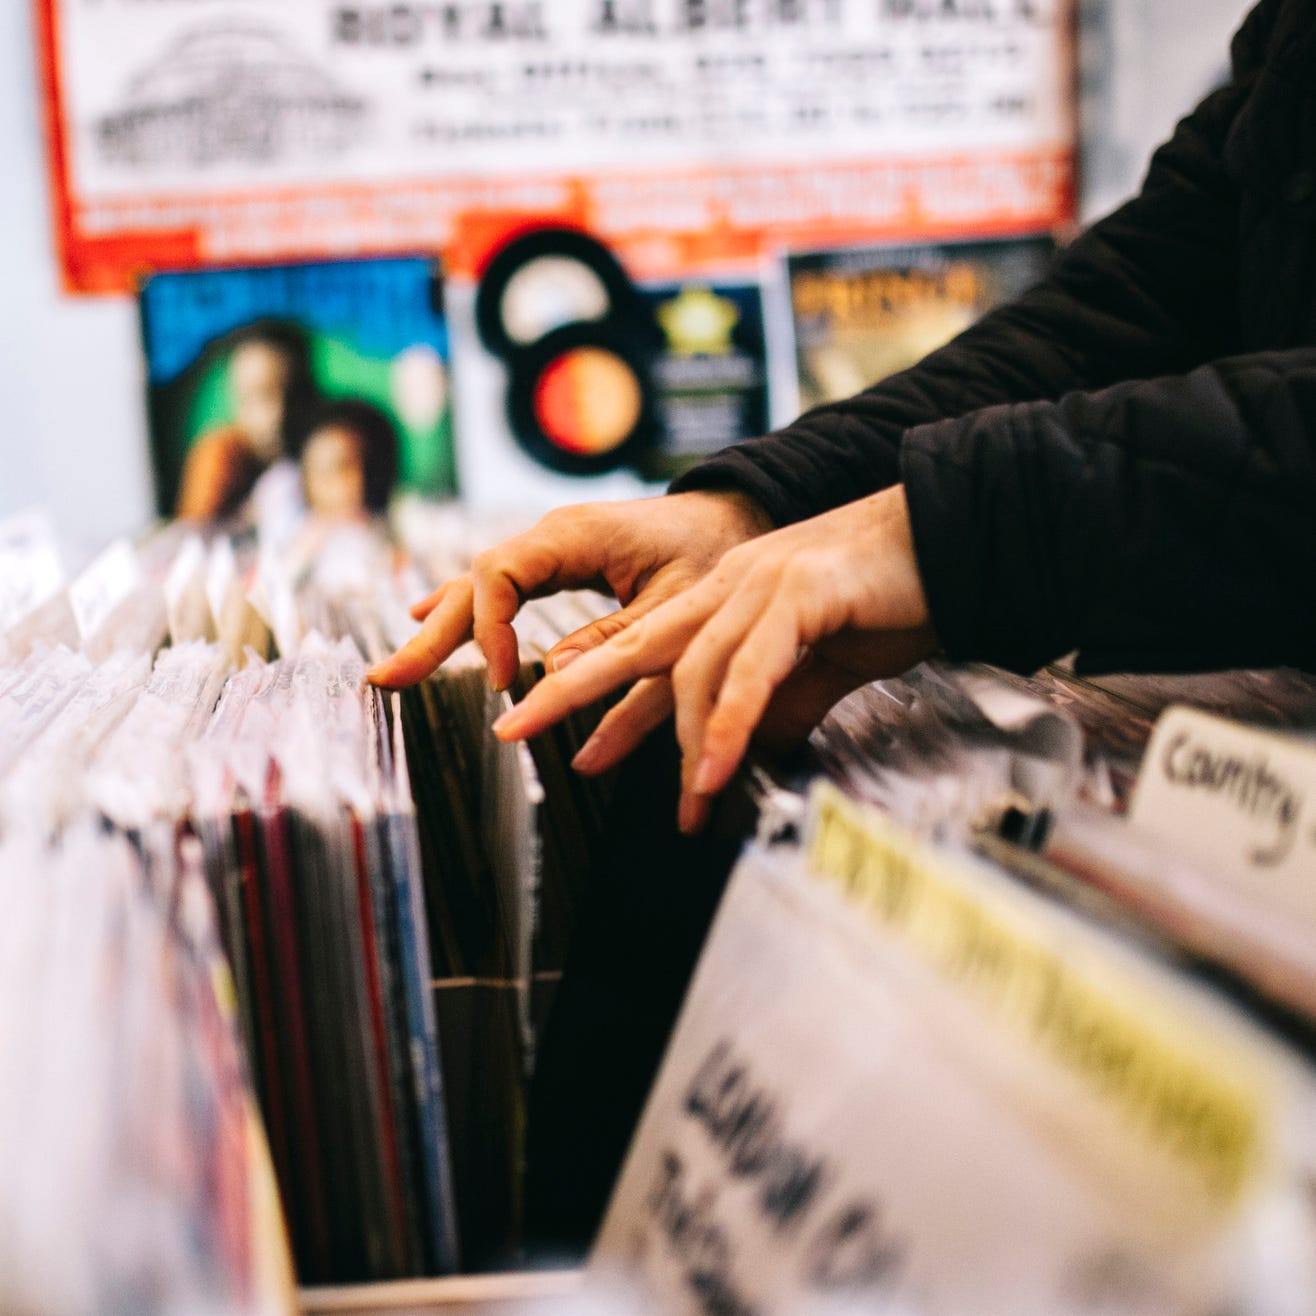 Record Store Day is Saturday. What Fox Valley stores will have the best deals?